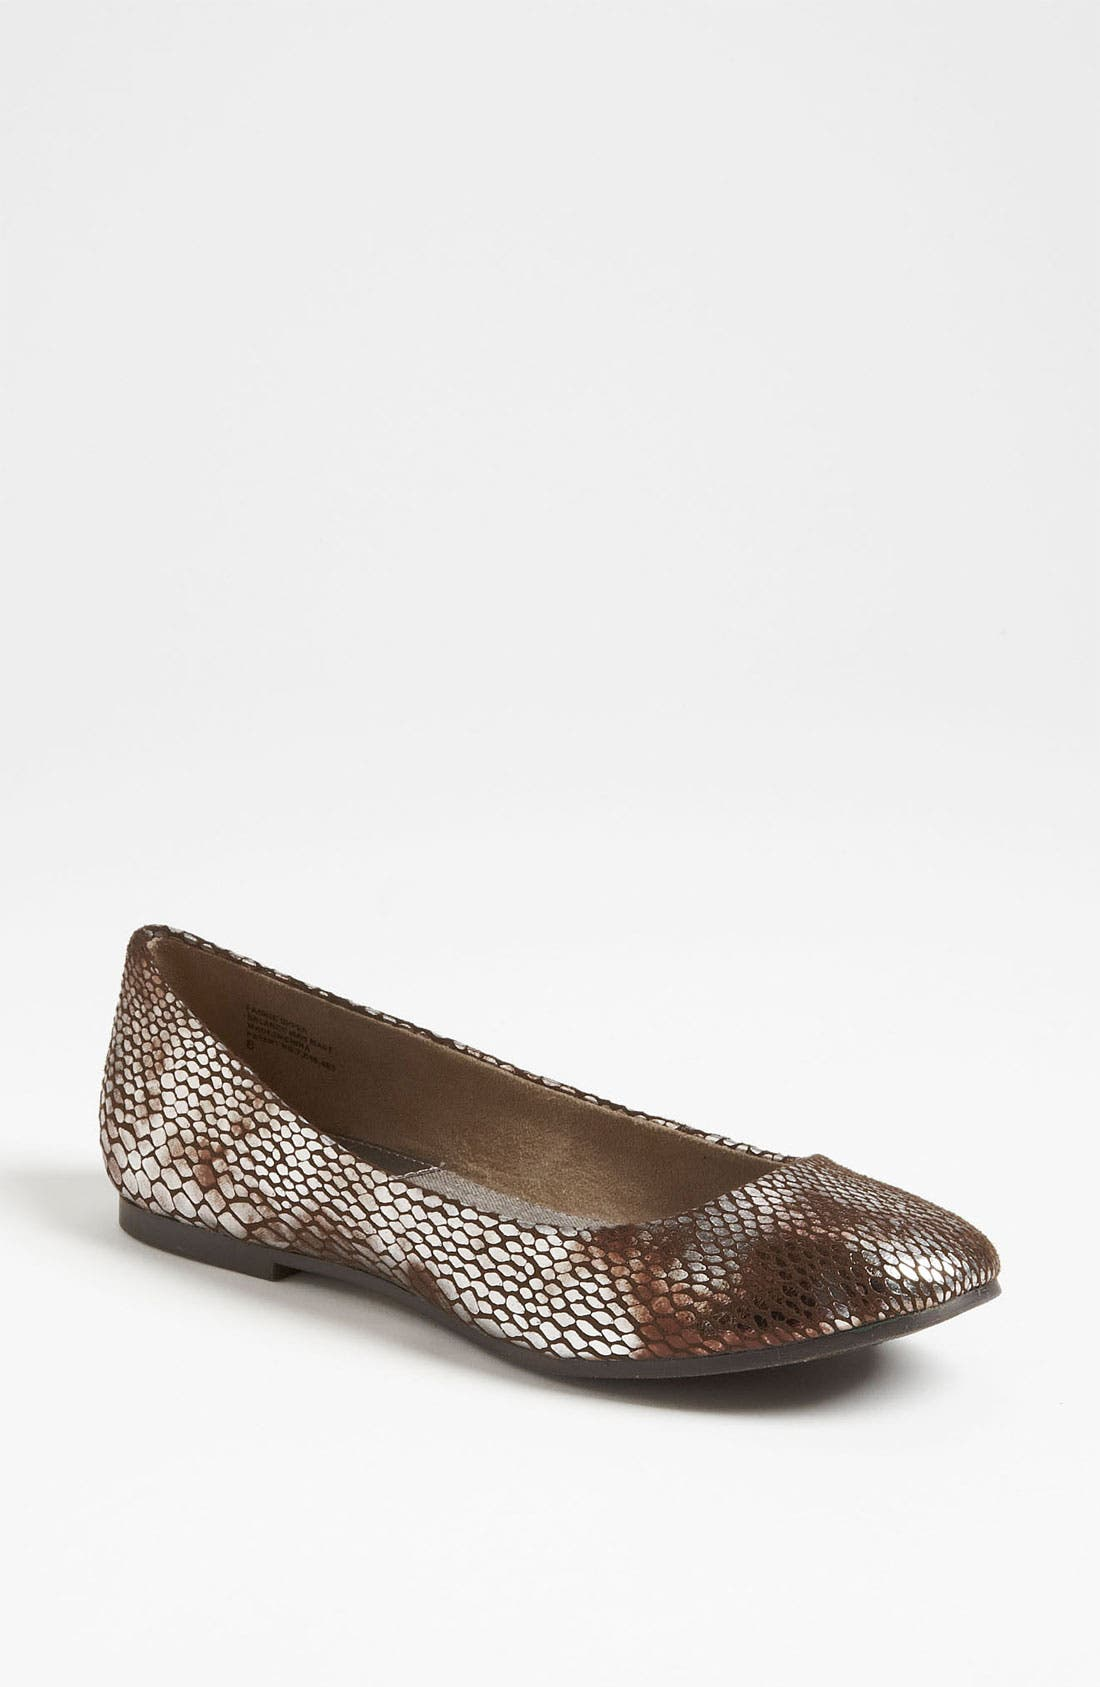 Alternate Image 1 Selected - BC Footwear 'Limousine' Metallic Flat